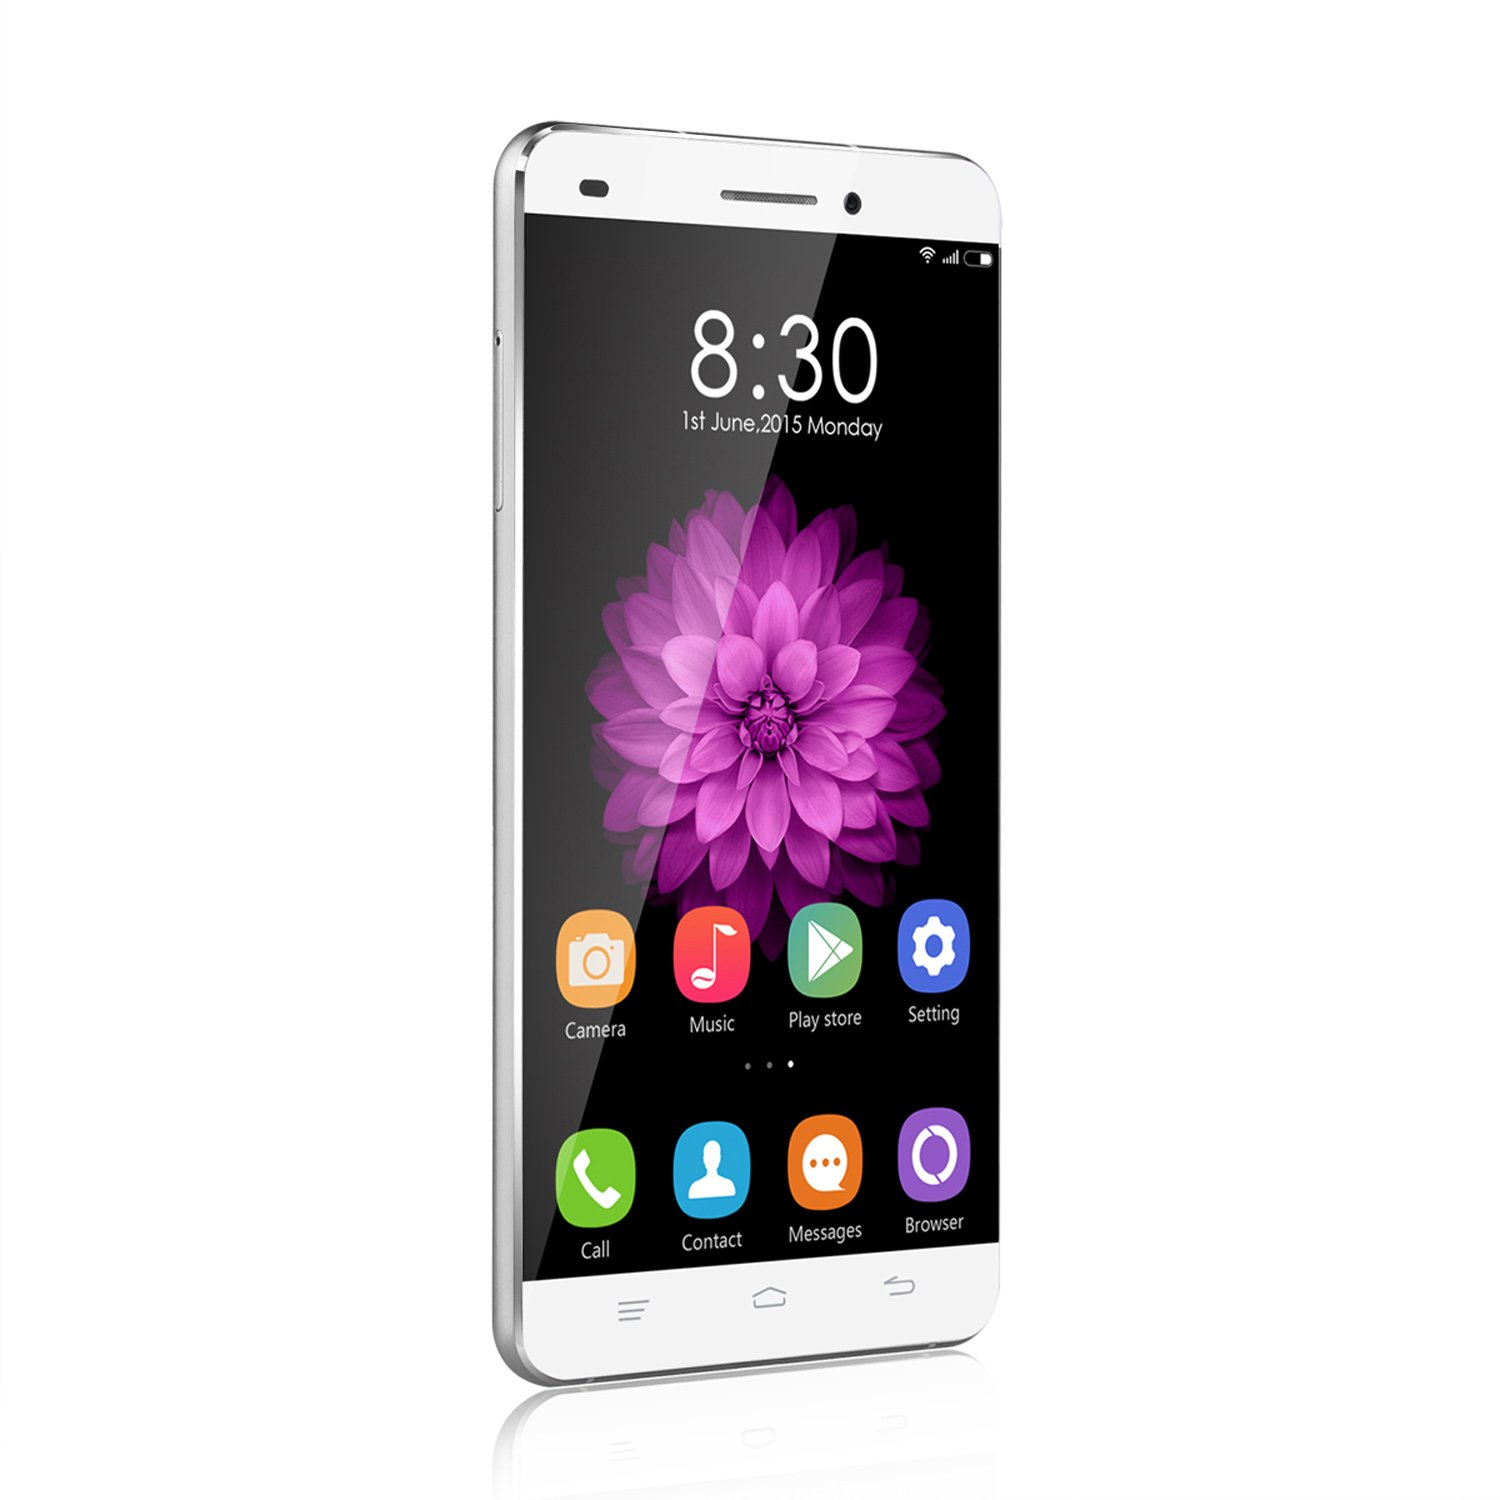 OUKITEL Universe Tap U8(Android 5.1/Fingerprint Touch/Metal frame/4G LTE) 5.5 Inch 2.5D Screen MTK6735 Quad Core Dual SIM Smartphone 13MP CAM 2GB RAM 16GB ...